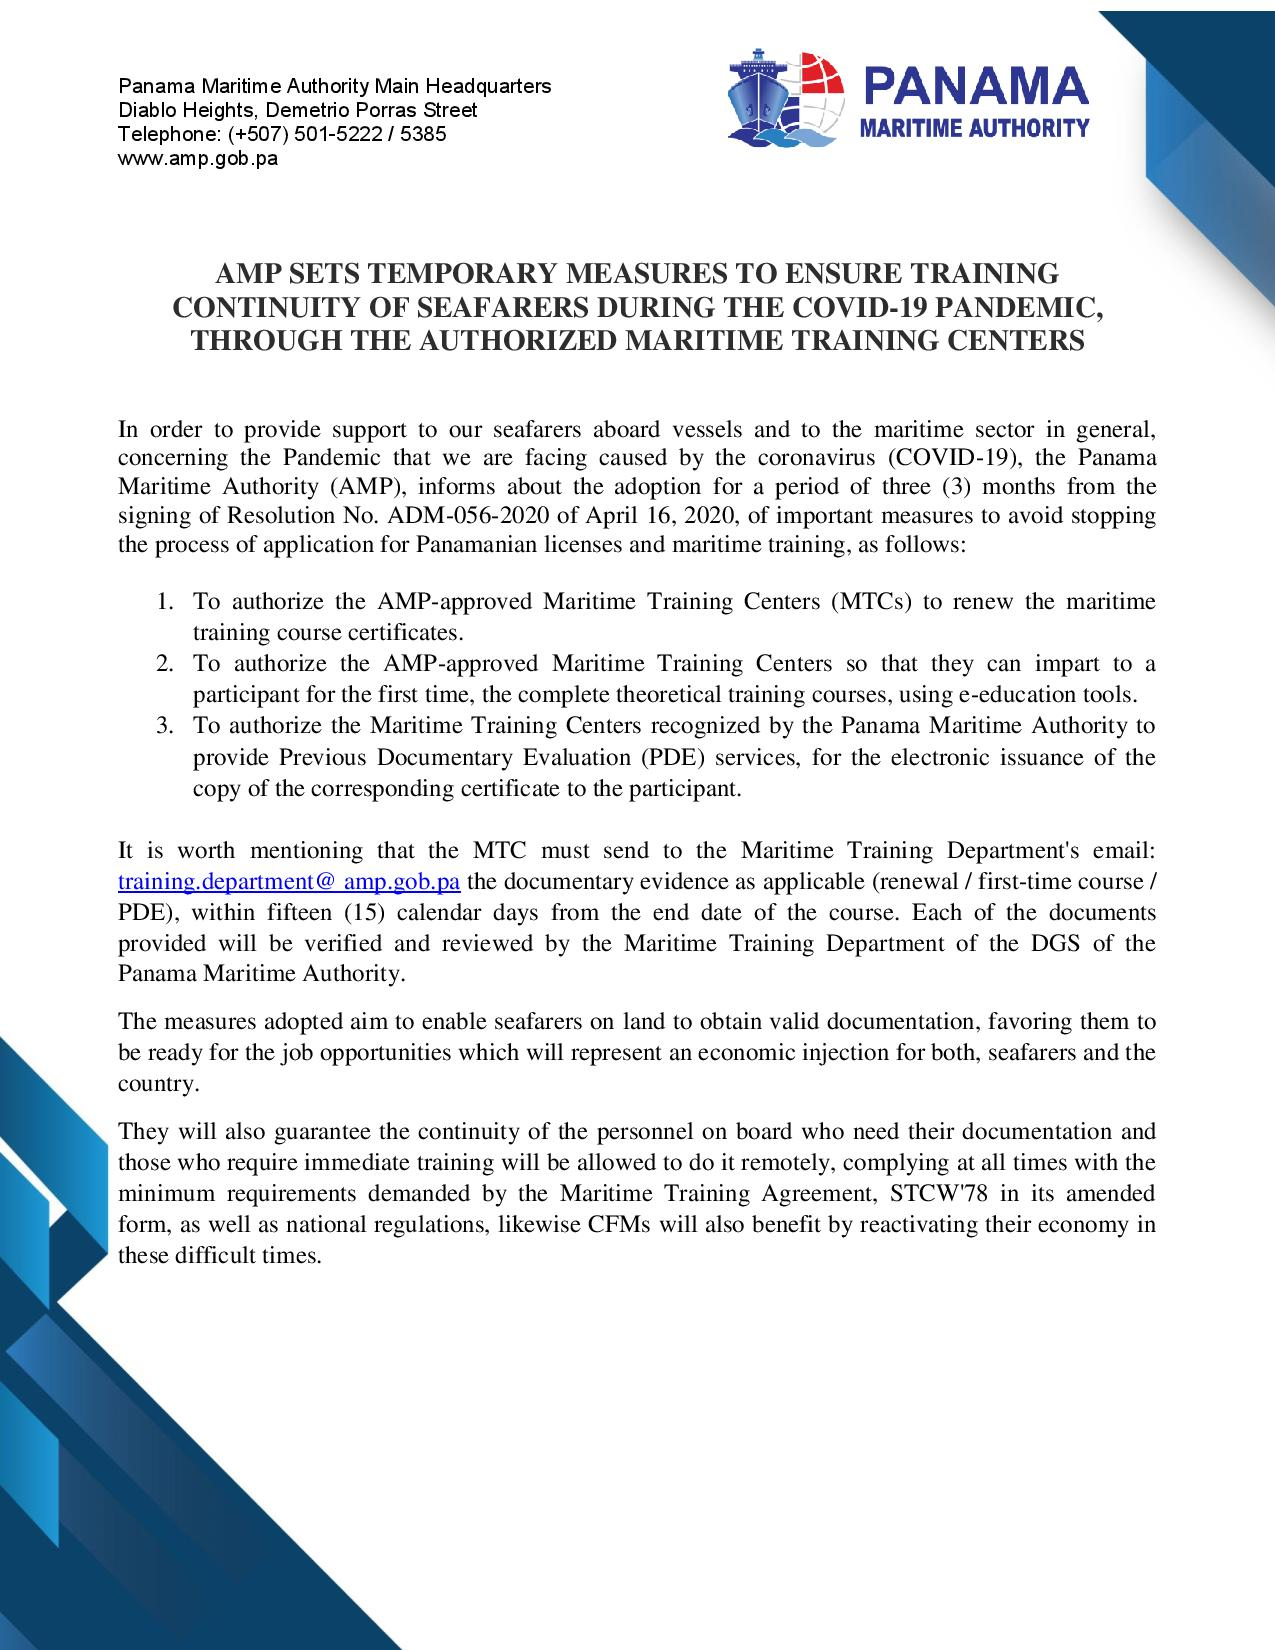 AMP SETS TEMPORARY MEASURES TO ENSURE TRAINING CONTINUITY OF SEAFARERS DURING THE COVID-19 PANDEMIC, THROUGH THE AUTHORIZED MARITIME TRAINING CENTERS-page-001